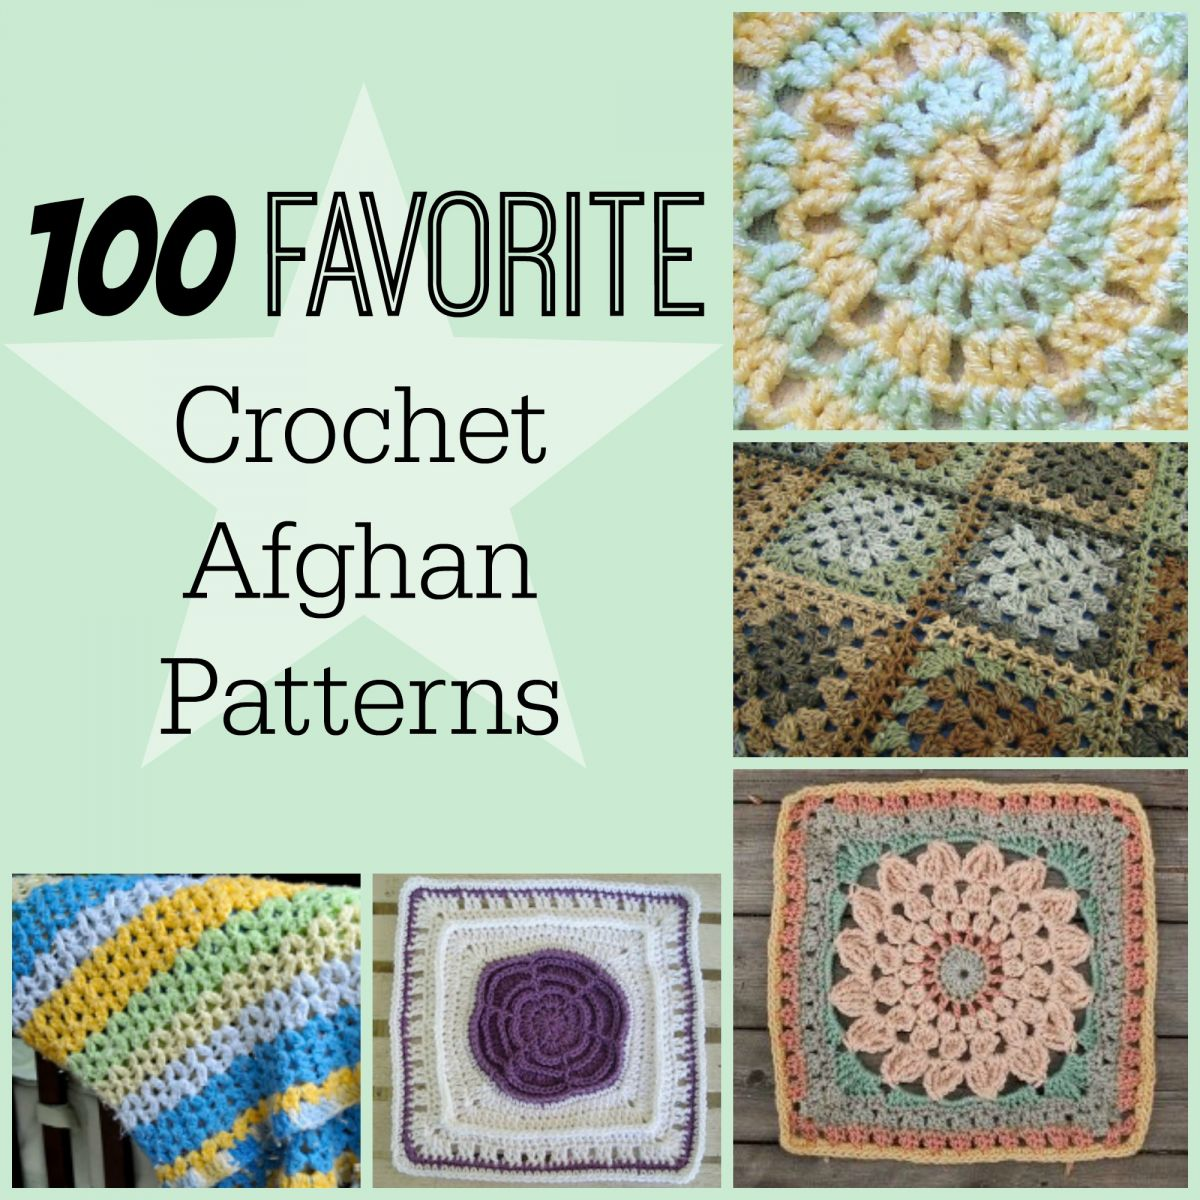 100 Favorite Crochet Afghan Patterns